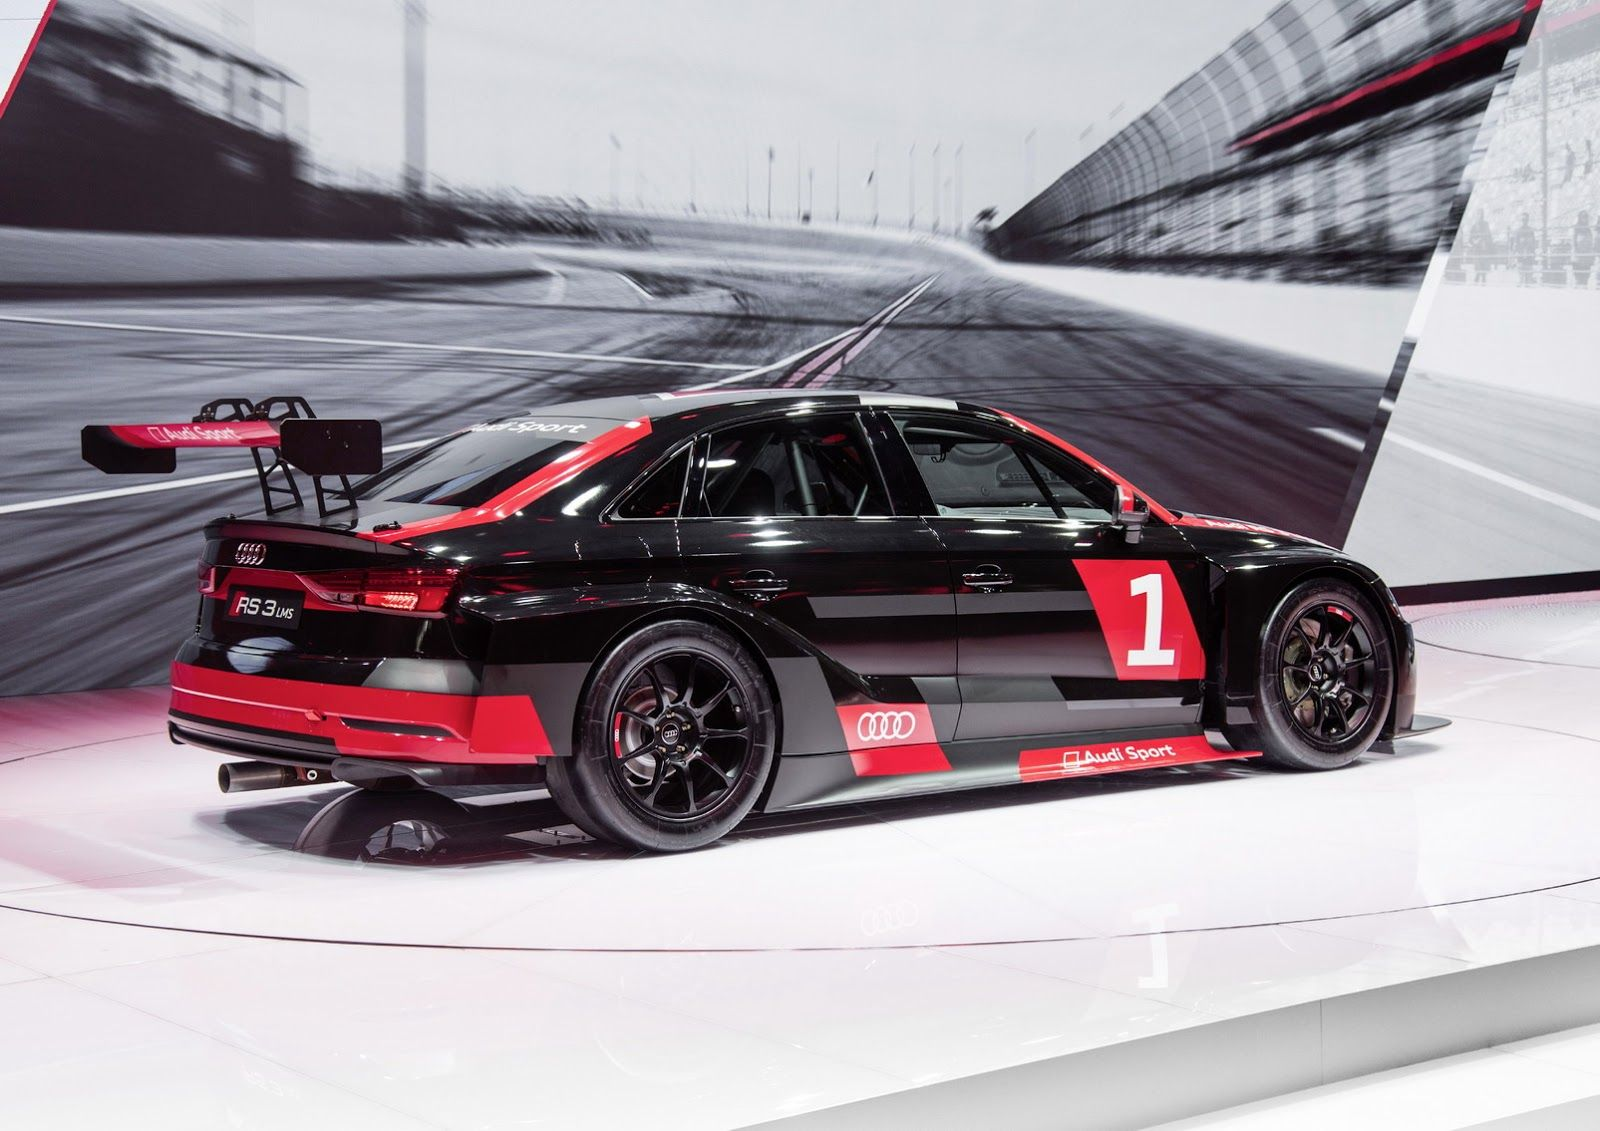 New Rs3 Lms Joins The Audi Sport S Racing Lineup Autos Und